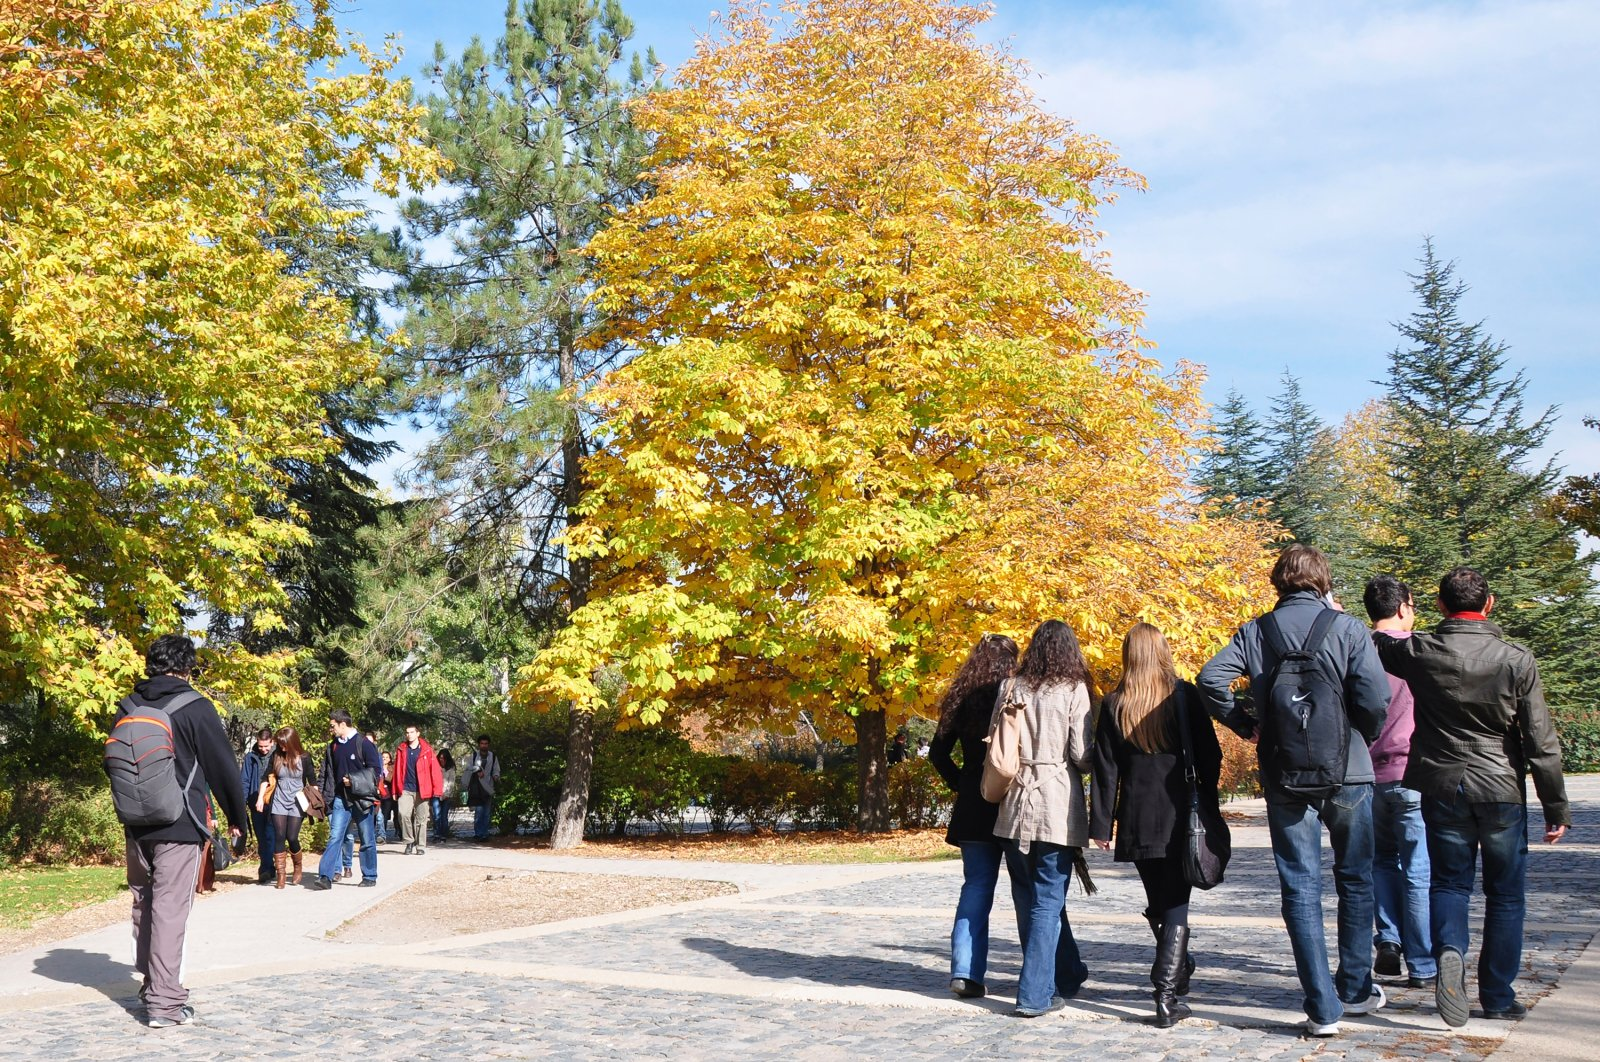 Students are seen on the campus of the Middle East Technical University in the capital Ankara, Turkey, Nov. 12, 2019. (Shutterstock Photo)